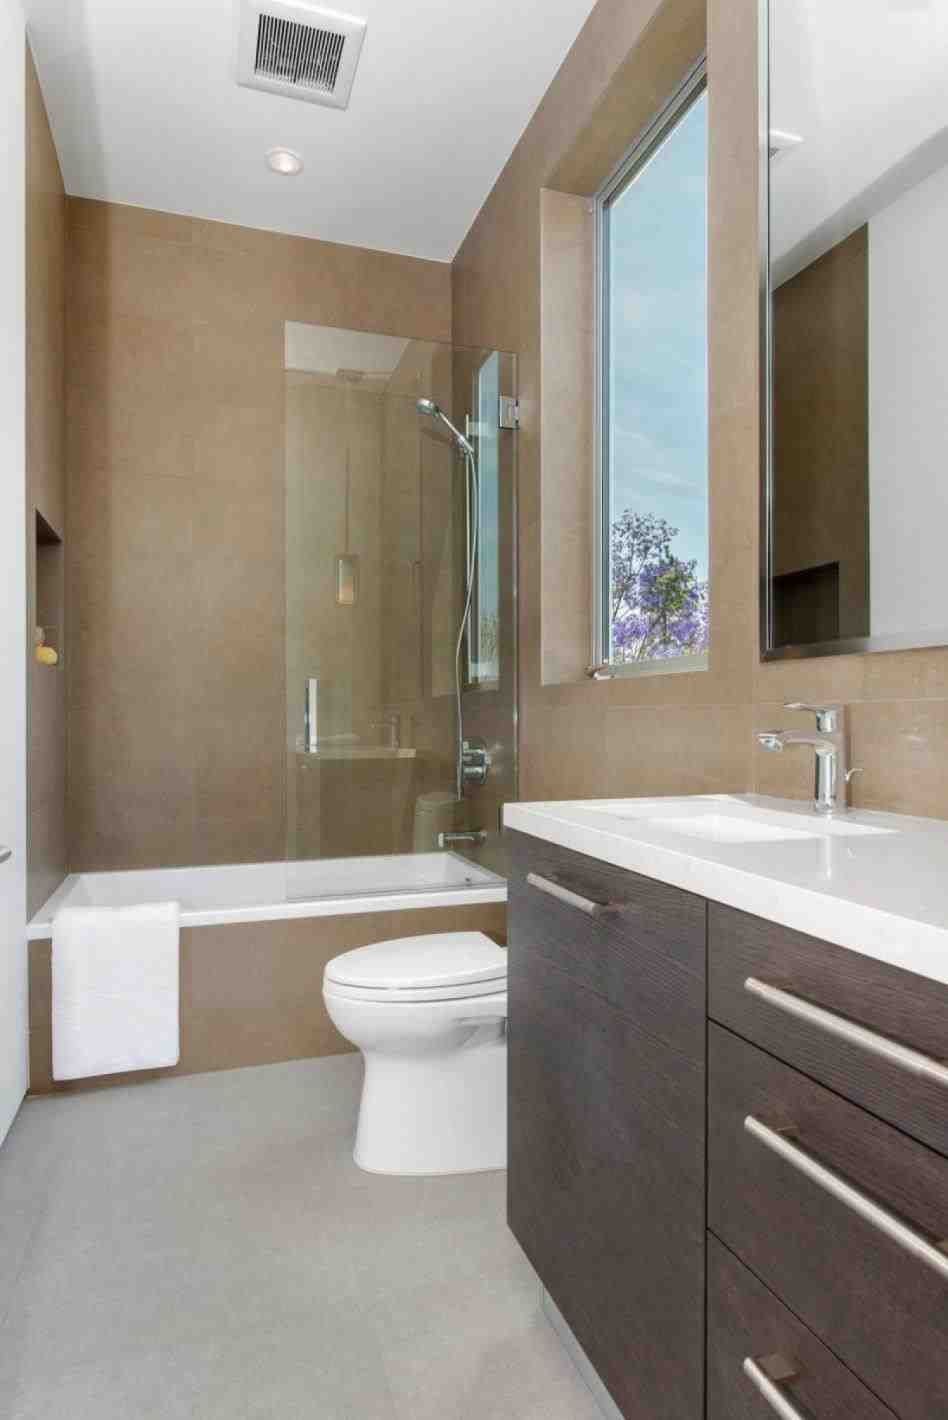 This Luxury Bathroom Designs 2016  Design Bath And Small Modern Pleasing Small Luxury Bathroom Decorating Design